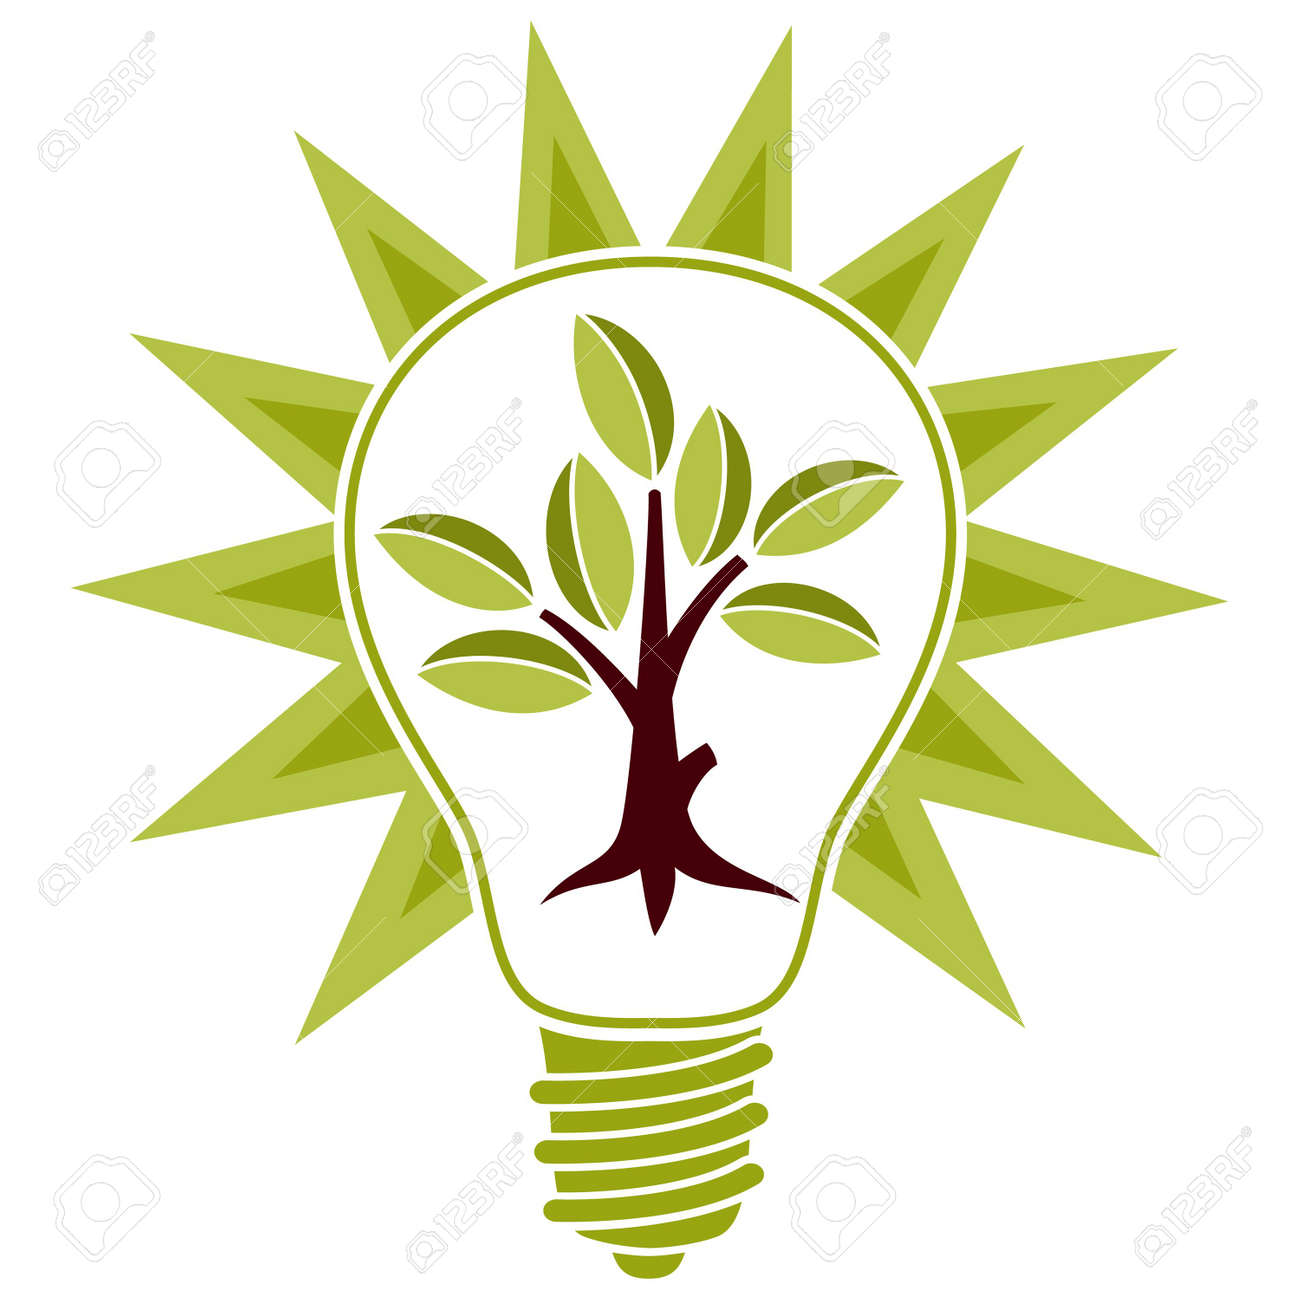 Clipart Energy Saving Energy Saving Bulb Stylized